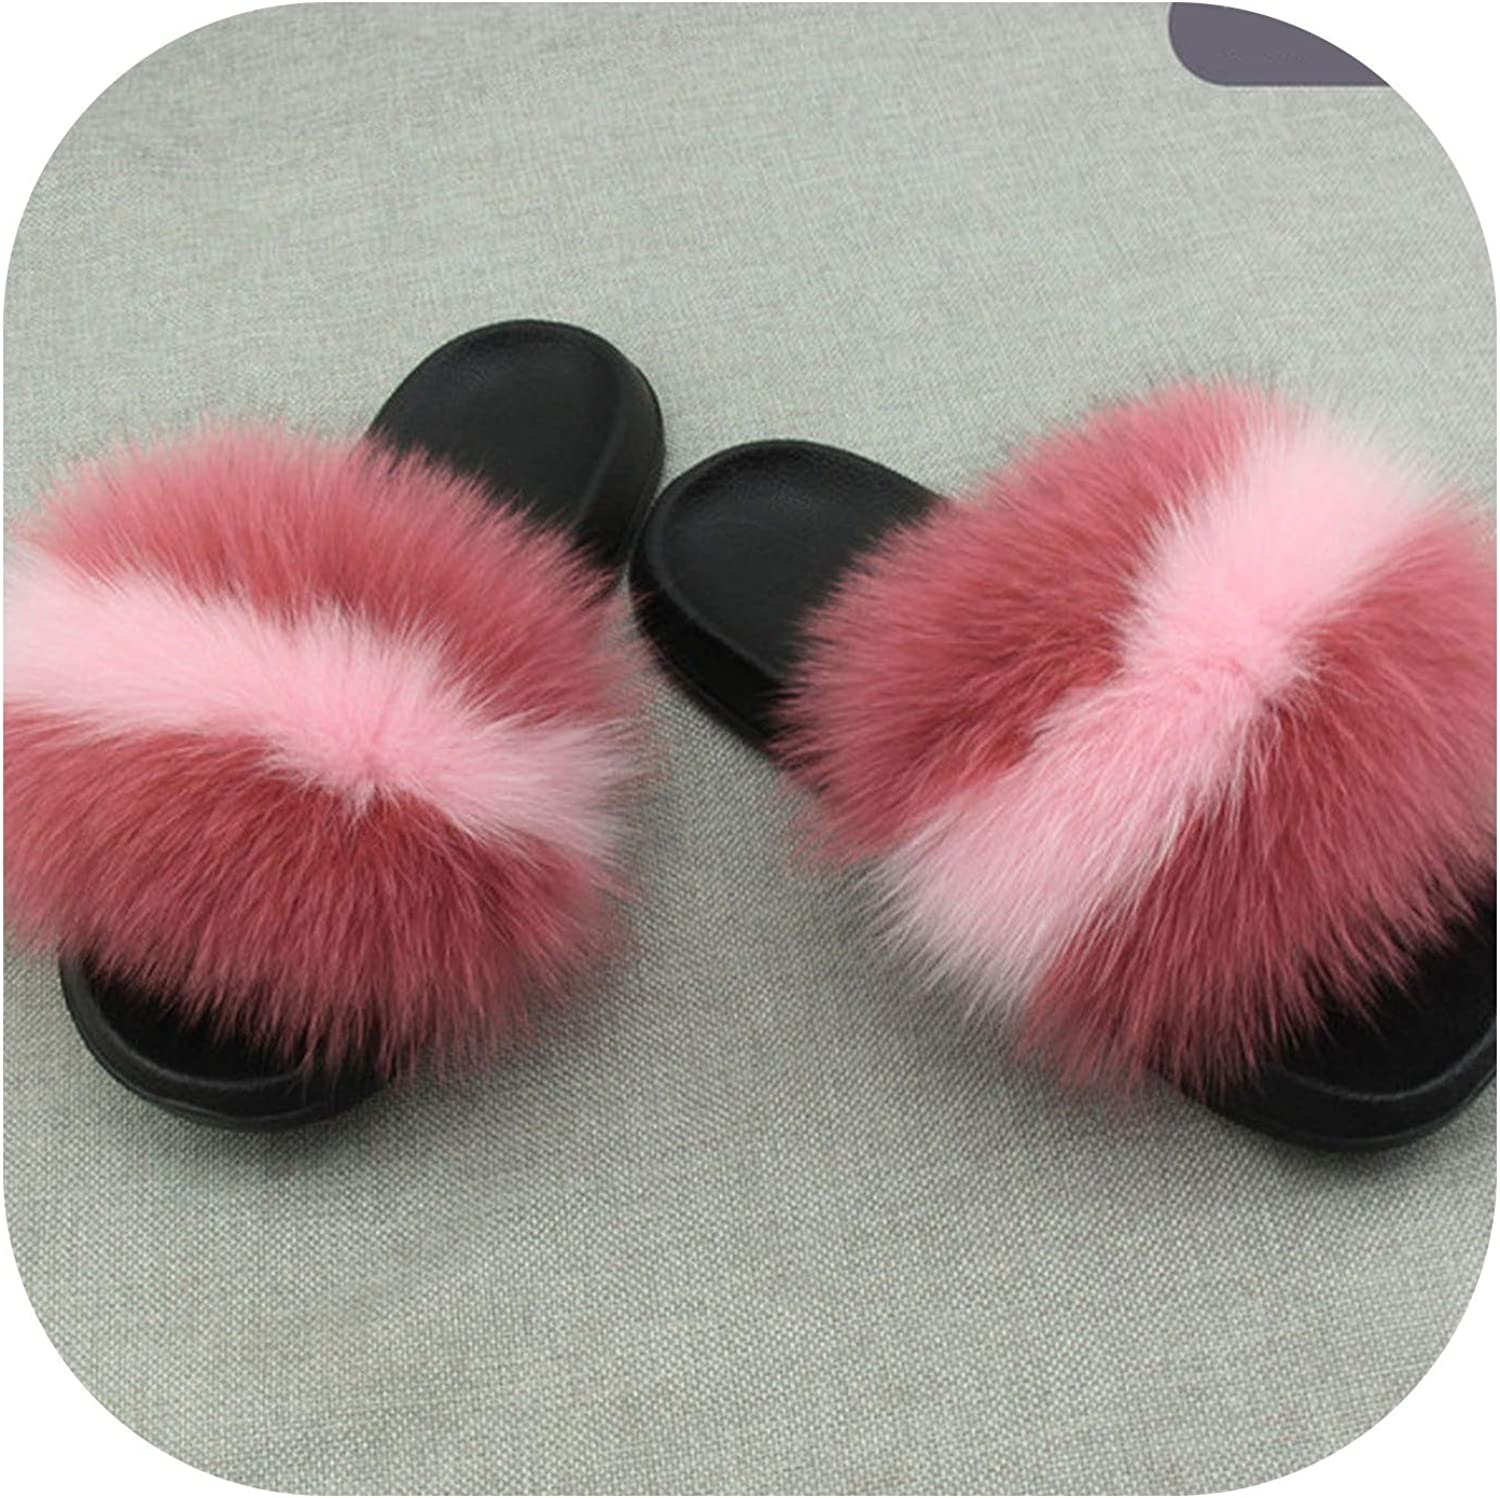 Real Fur Slippers Women Fox Home Fluffy Slides Feathers Furry Summer Flats Raccoon Ladies shoes